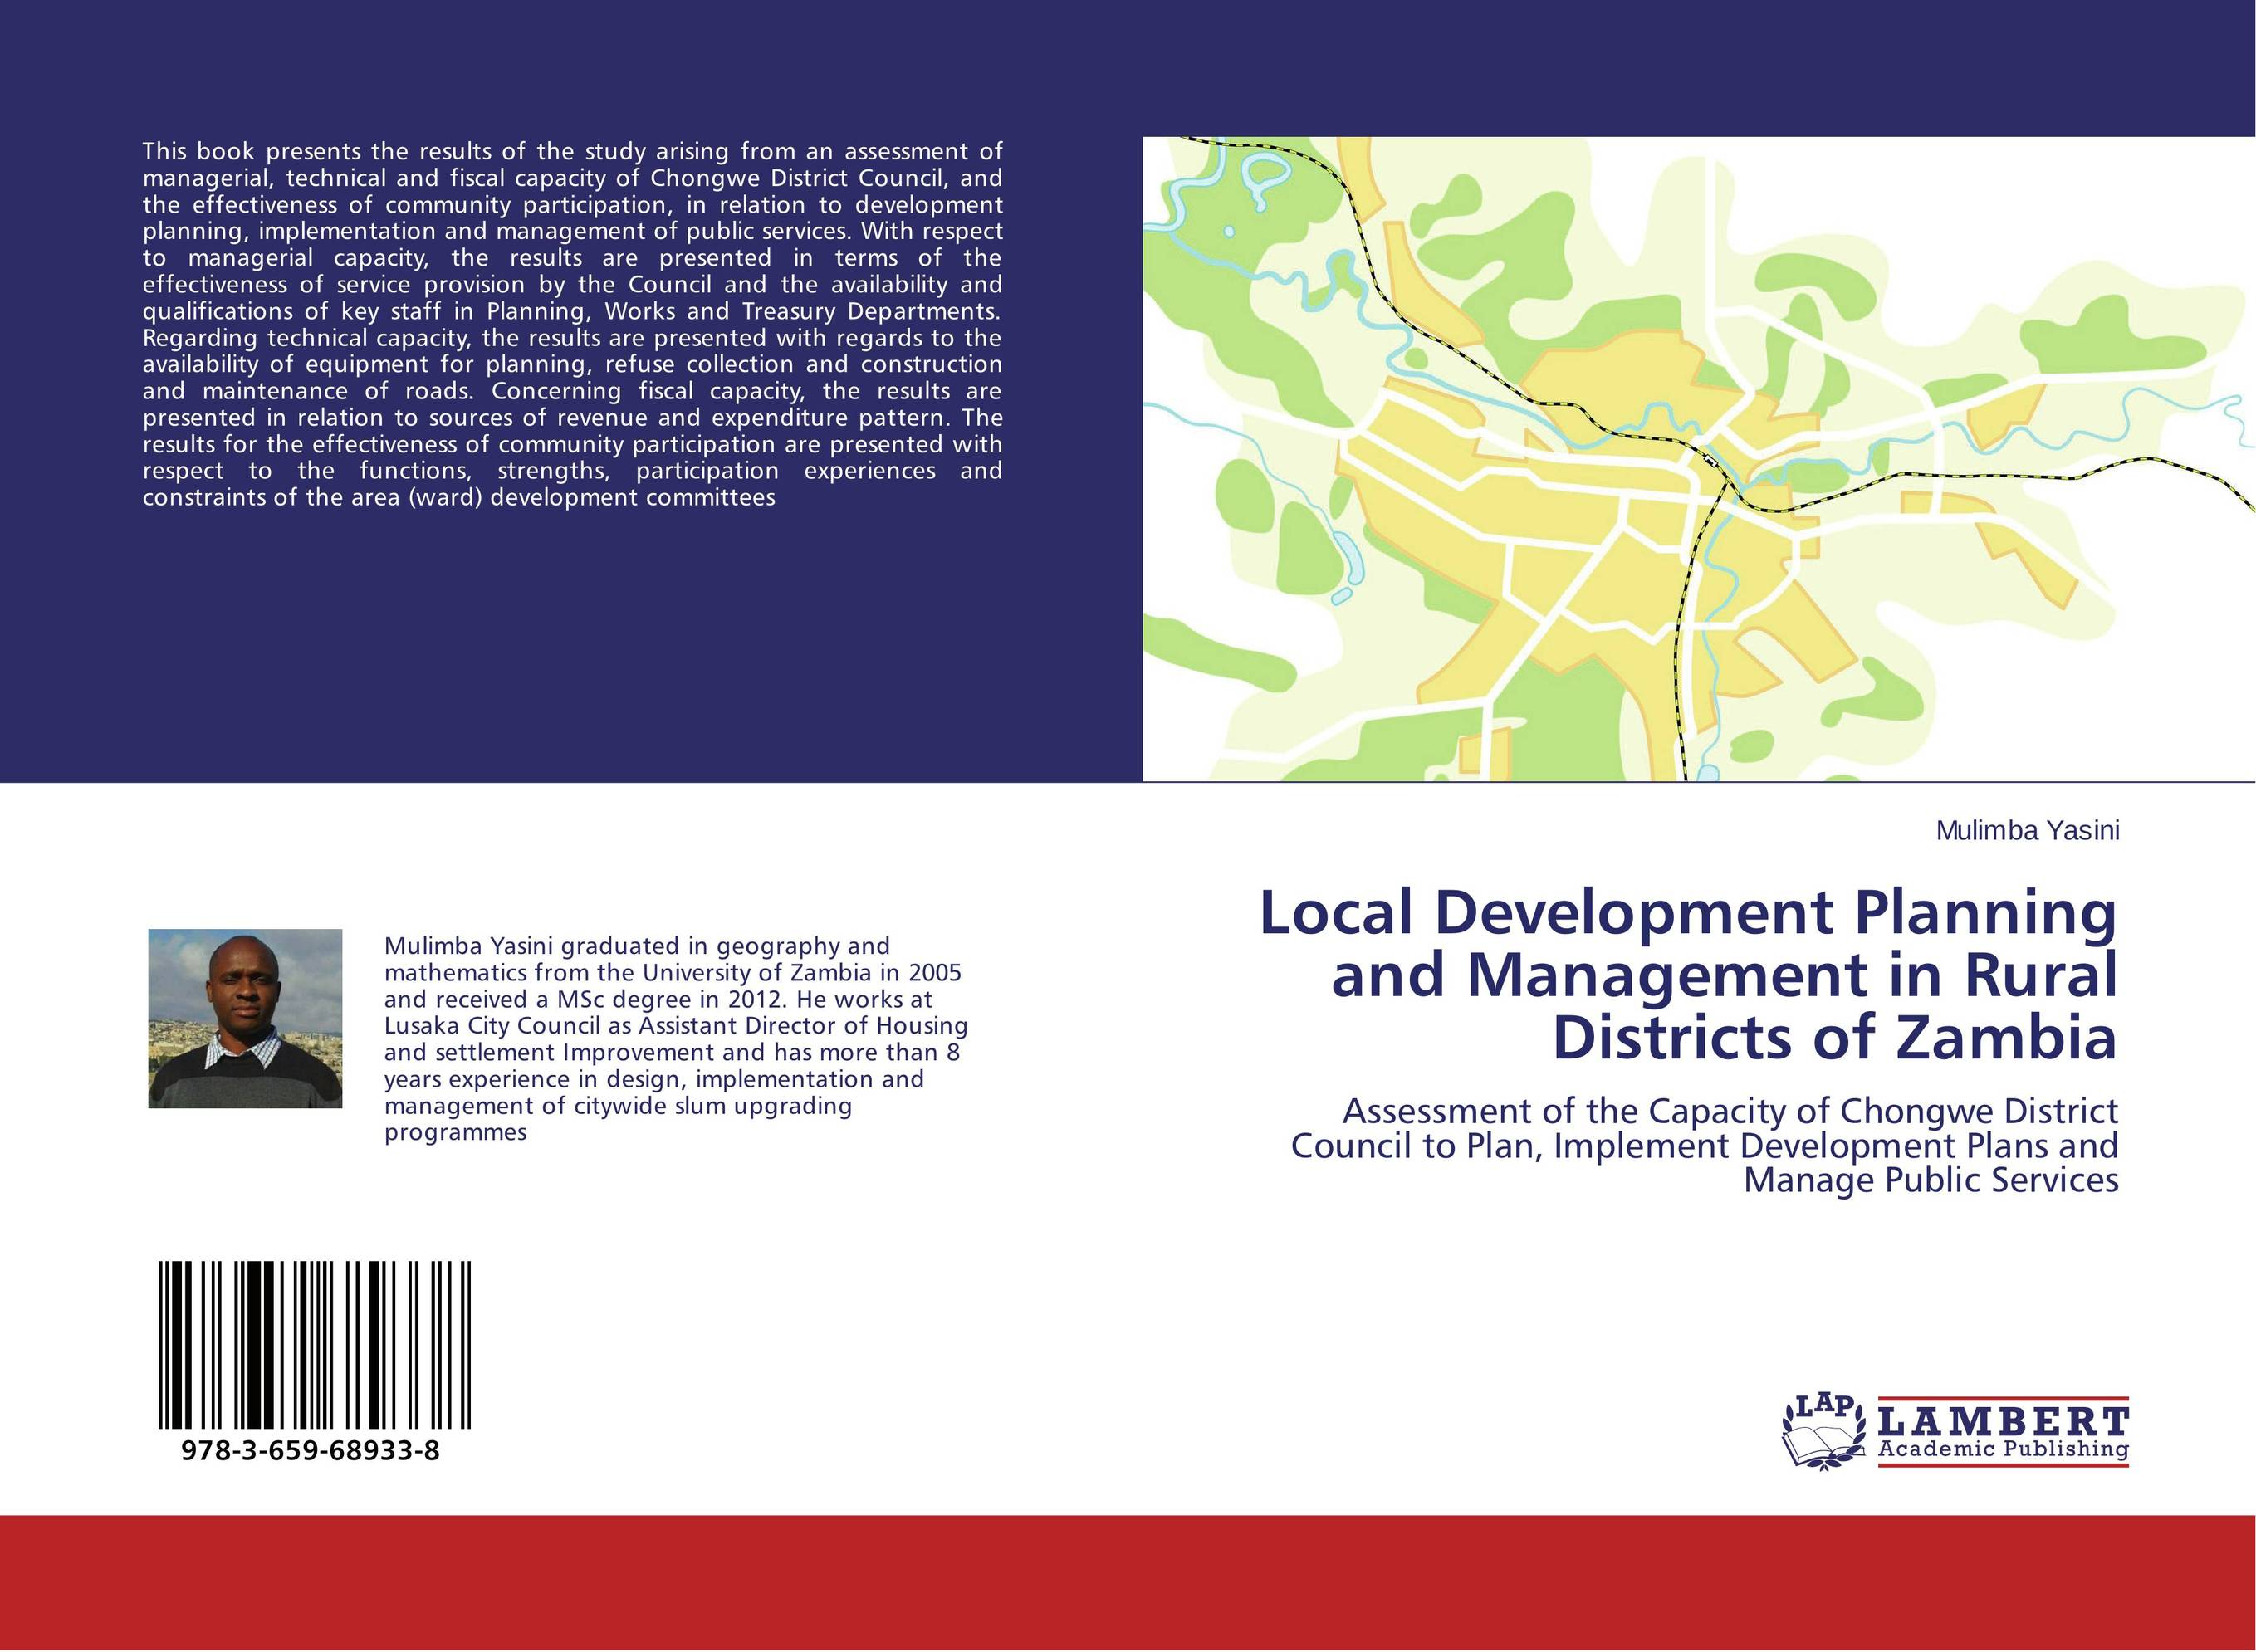 Local Development Planning and Management in Rural Districts of Zambia